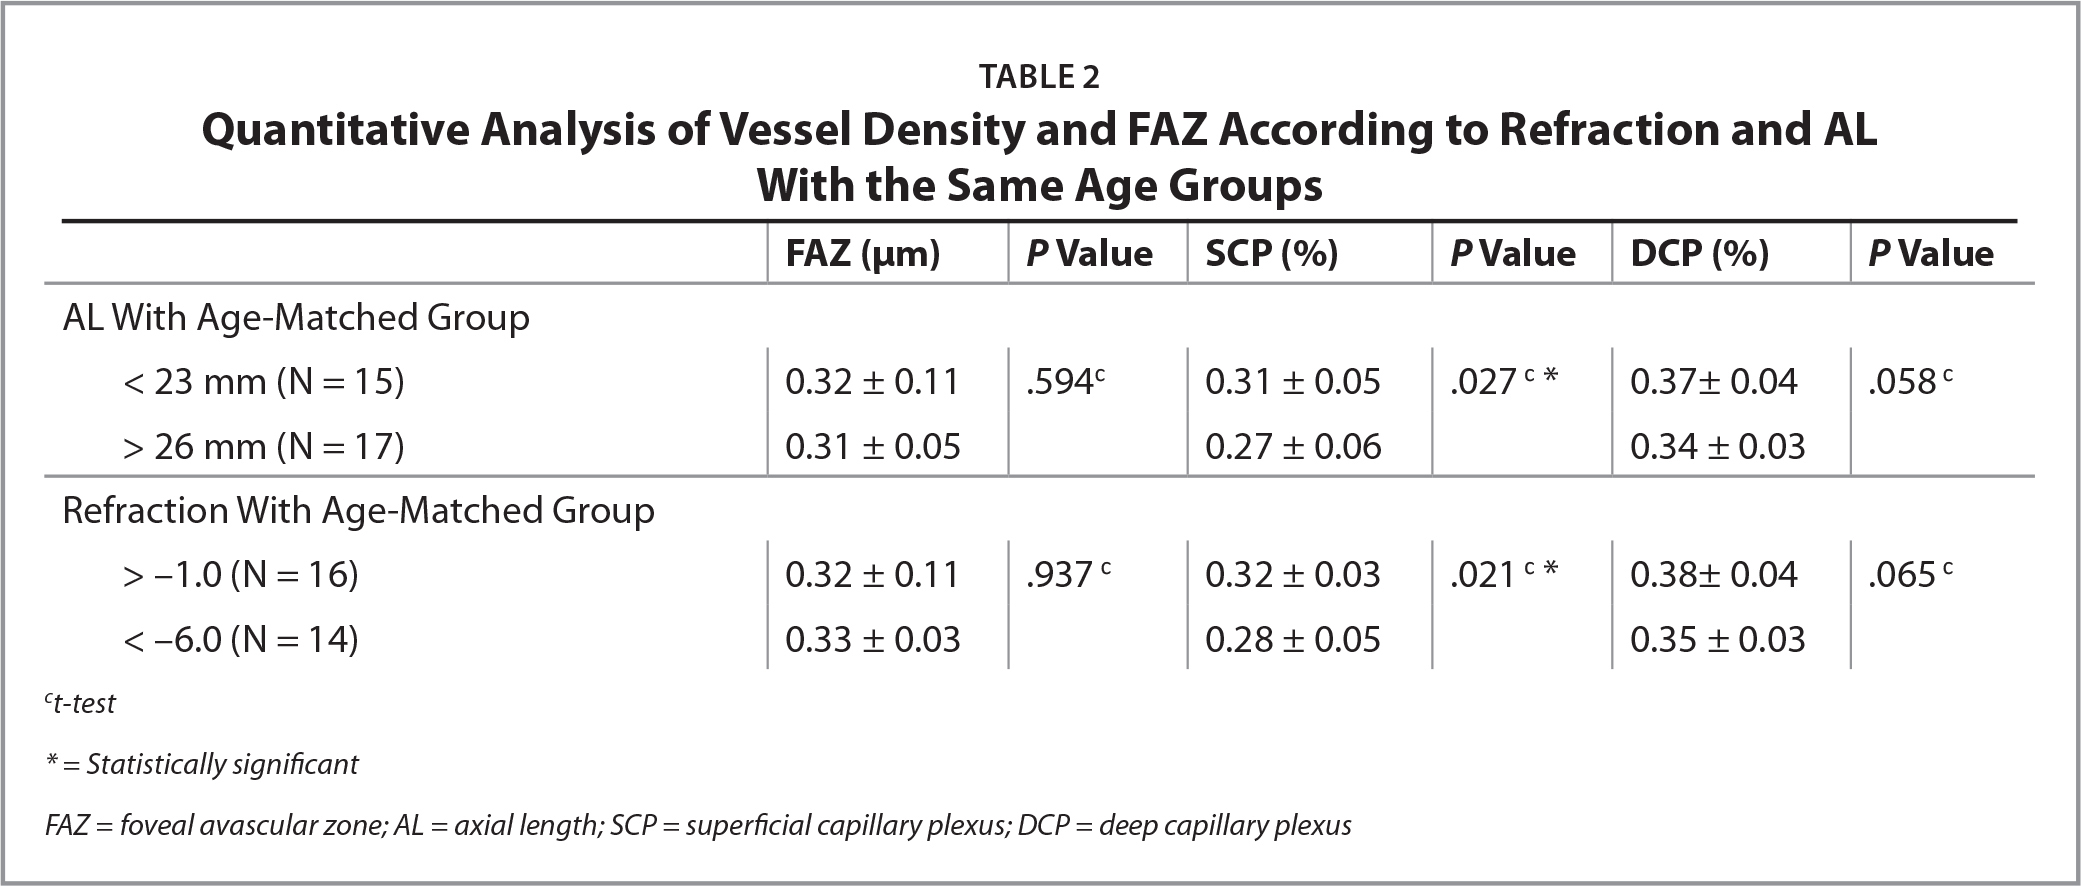 Quantitative Analysis of Vessel Density and FAZ According to Refraction and ALWith the Same Age Groups